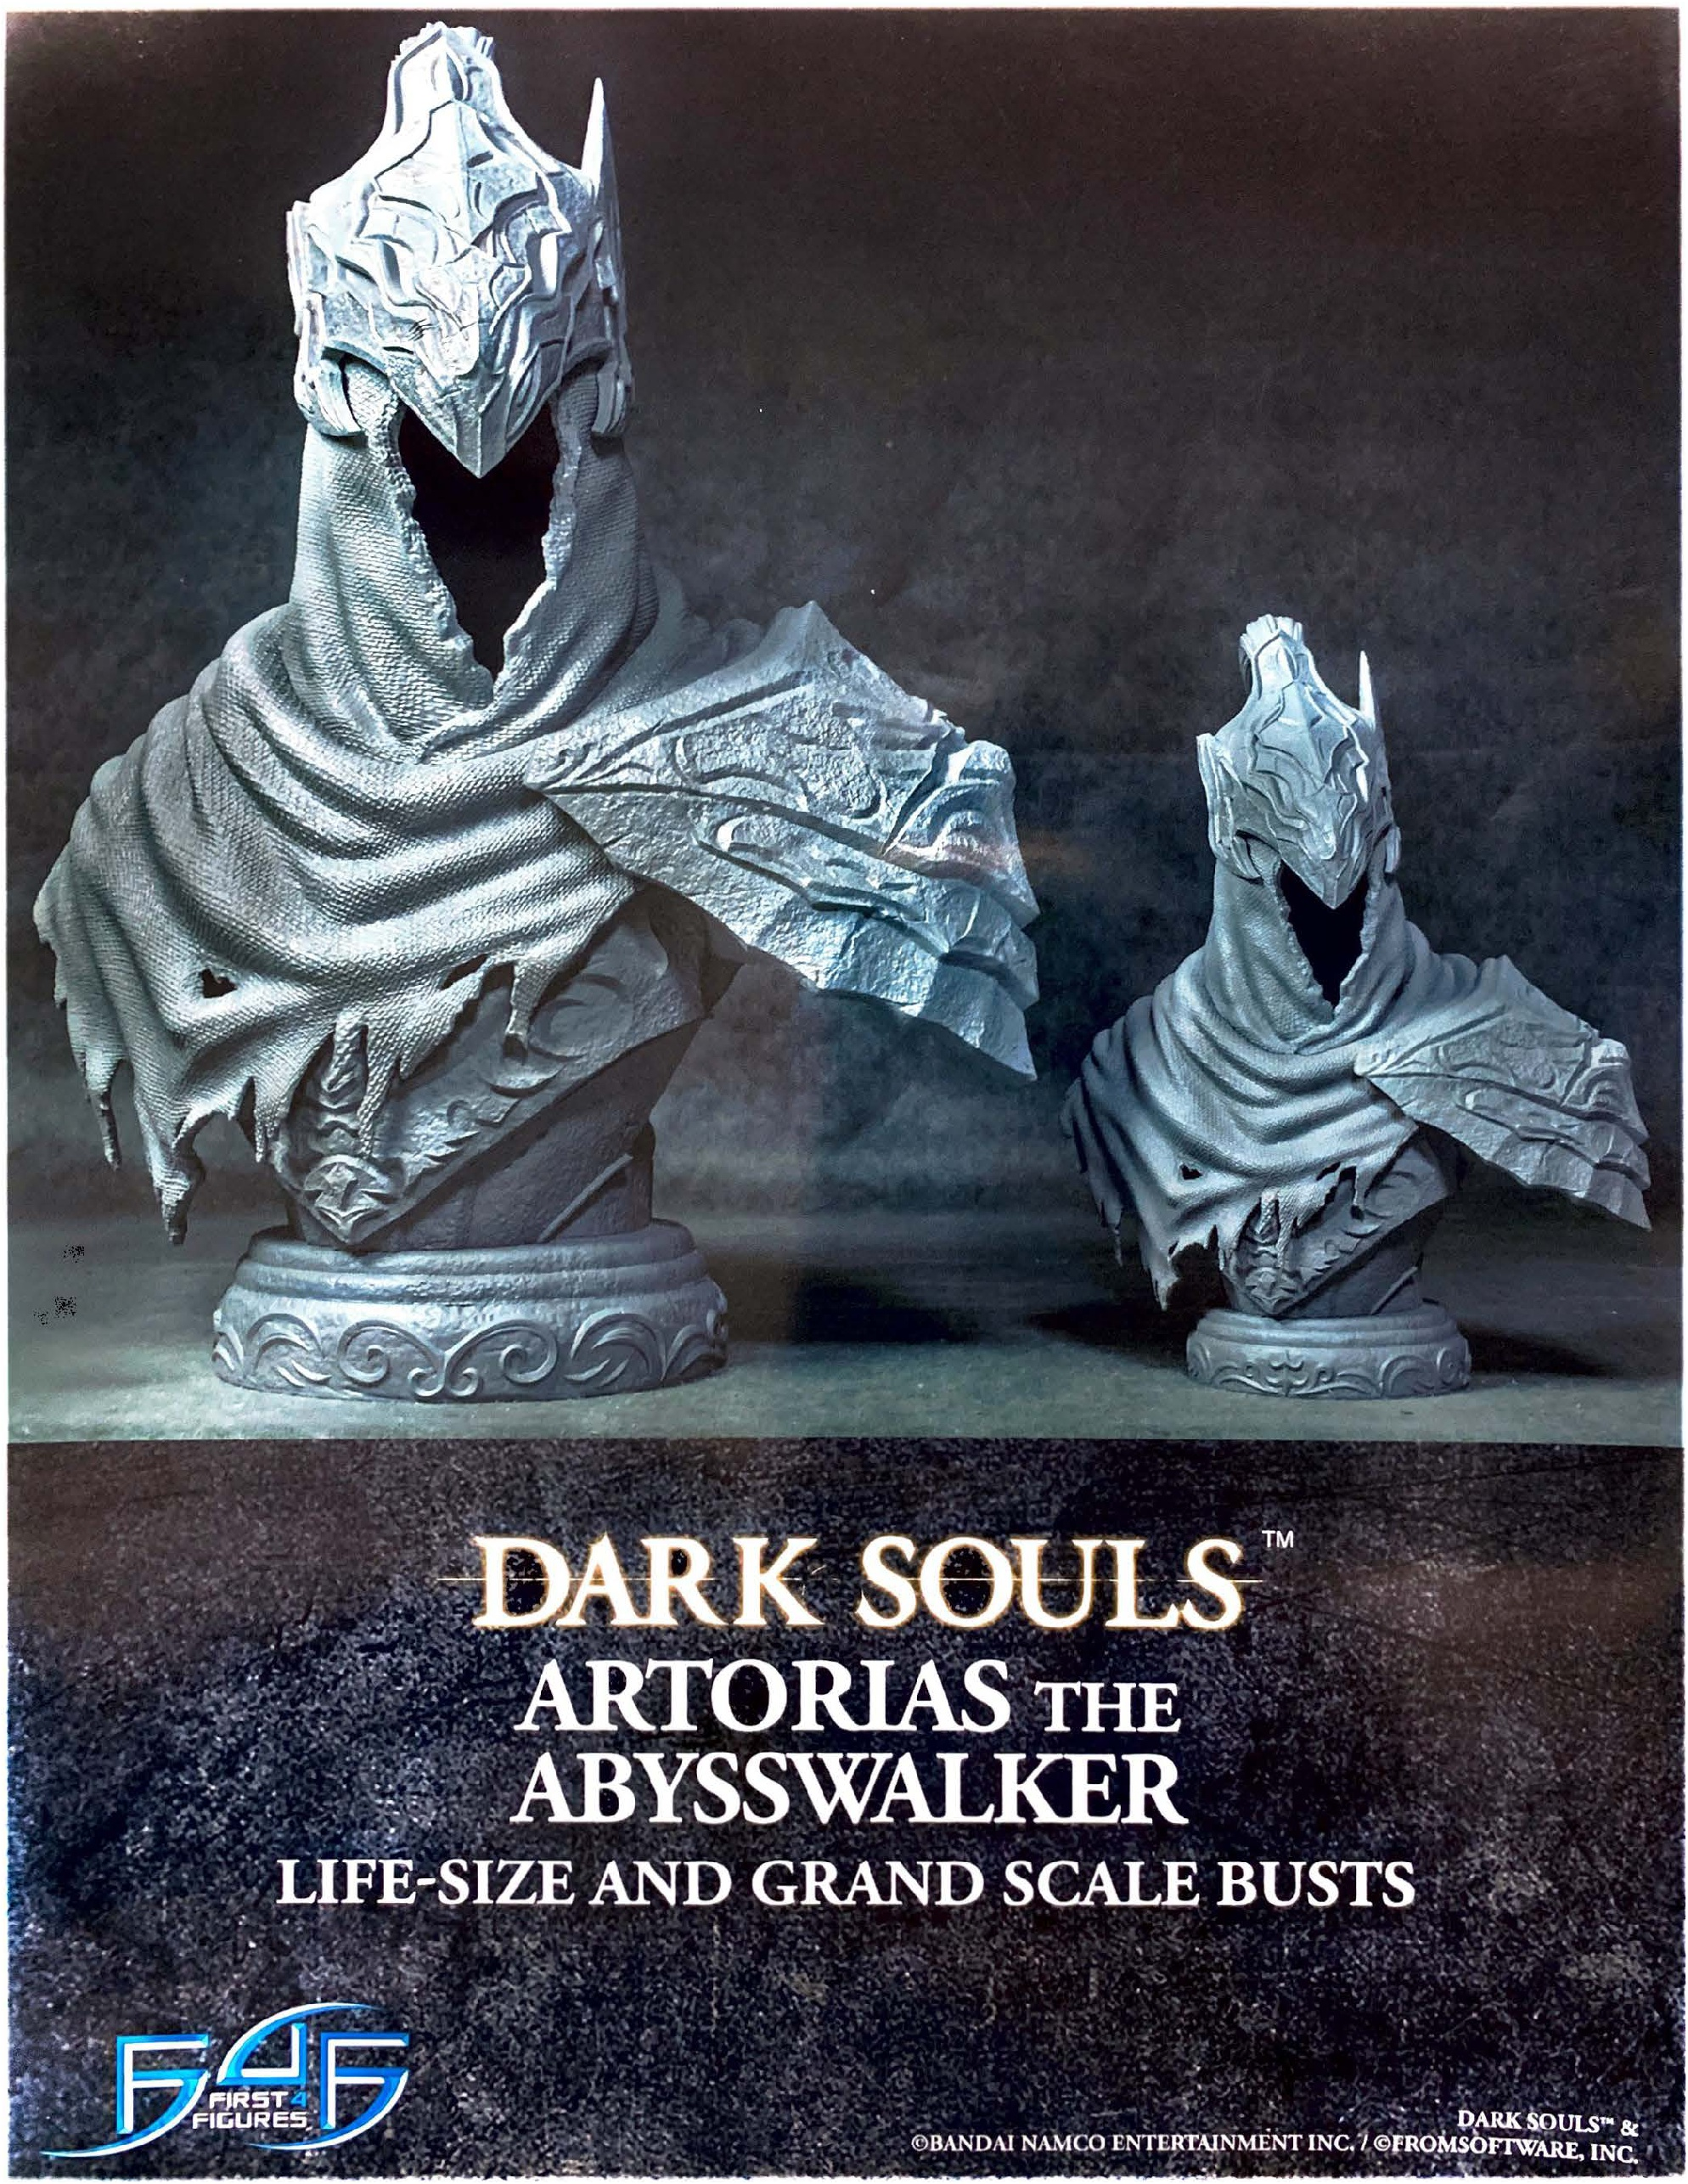 Artorias the Abysswalker Bust size comparison